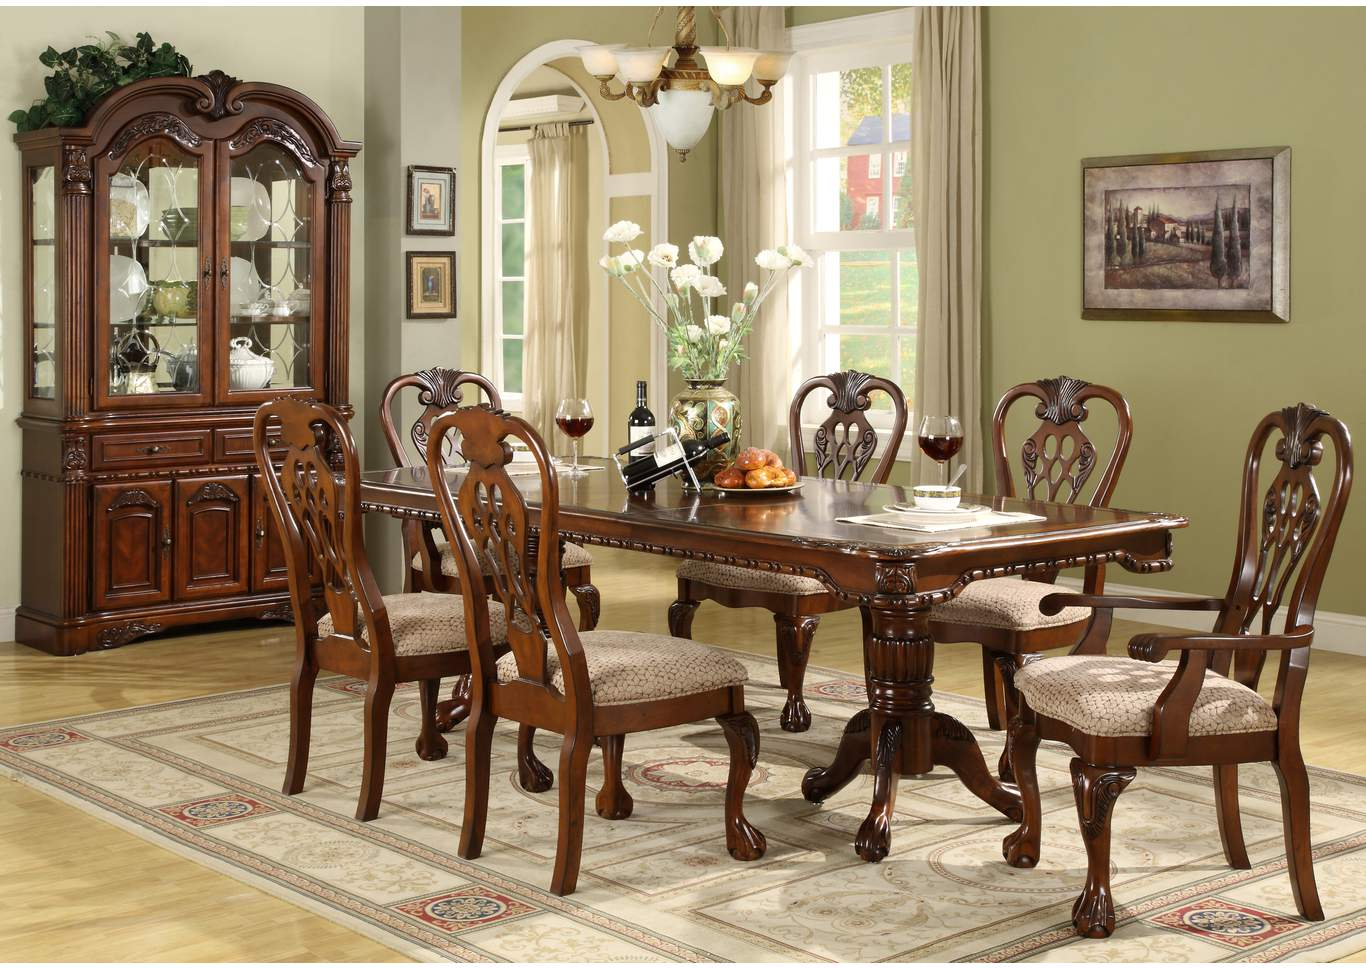 Brussels Dining Table w/4 Side Chairs and 2 Arm Chairs,Crown Mark